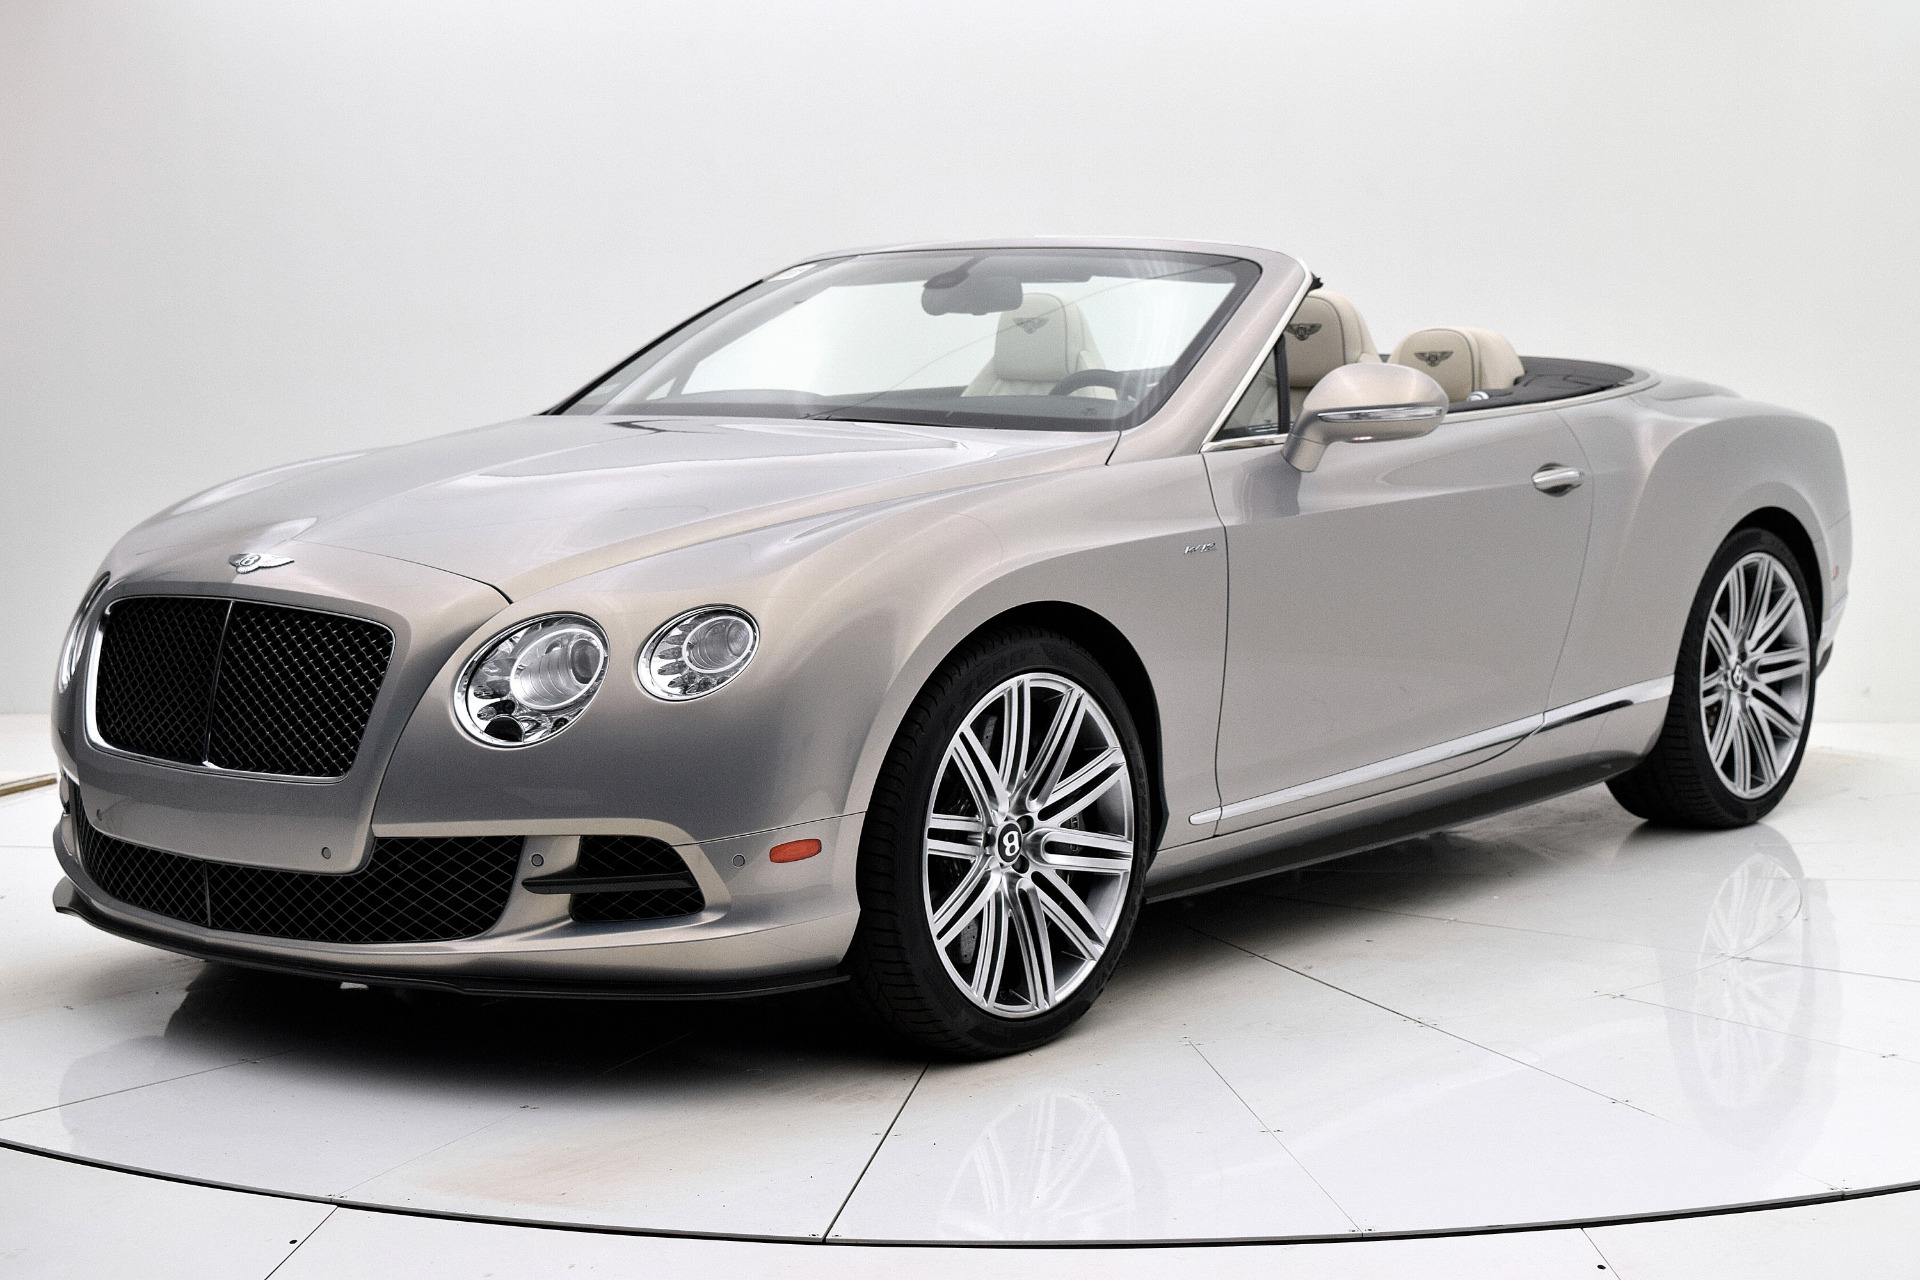 Used 2014 Bentley Continental GT Speed Convertible for sale Sold at F.C. Kerbeck Aston Martin in Palmyra NJ 08065 2